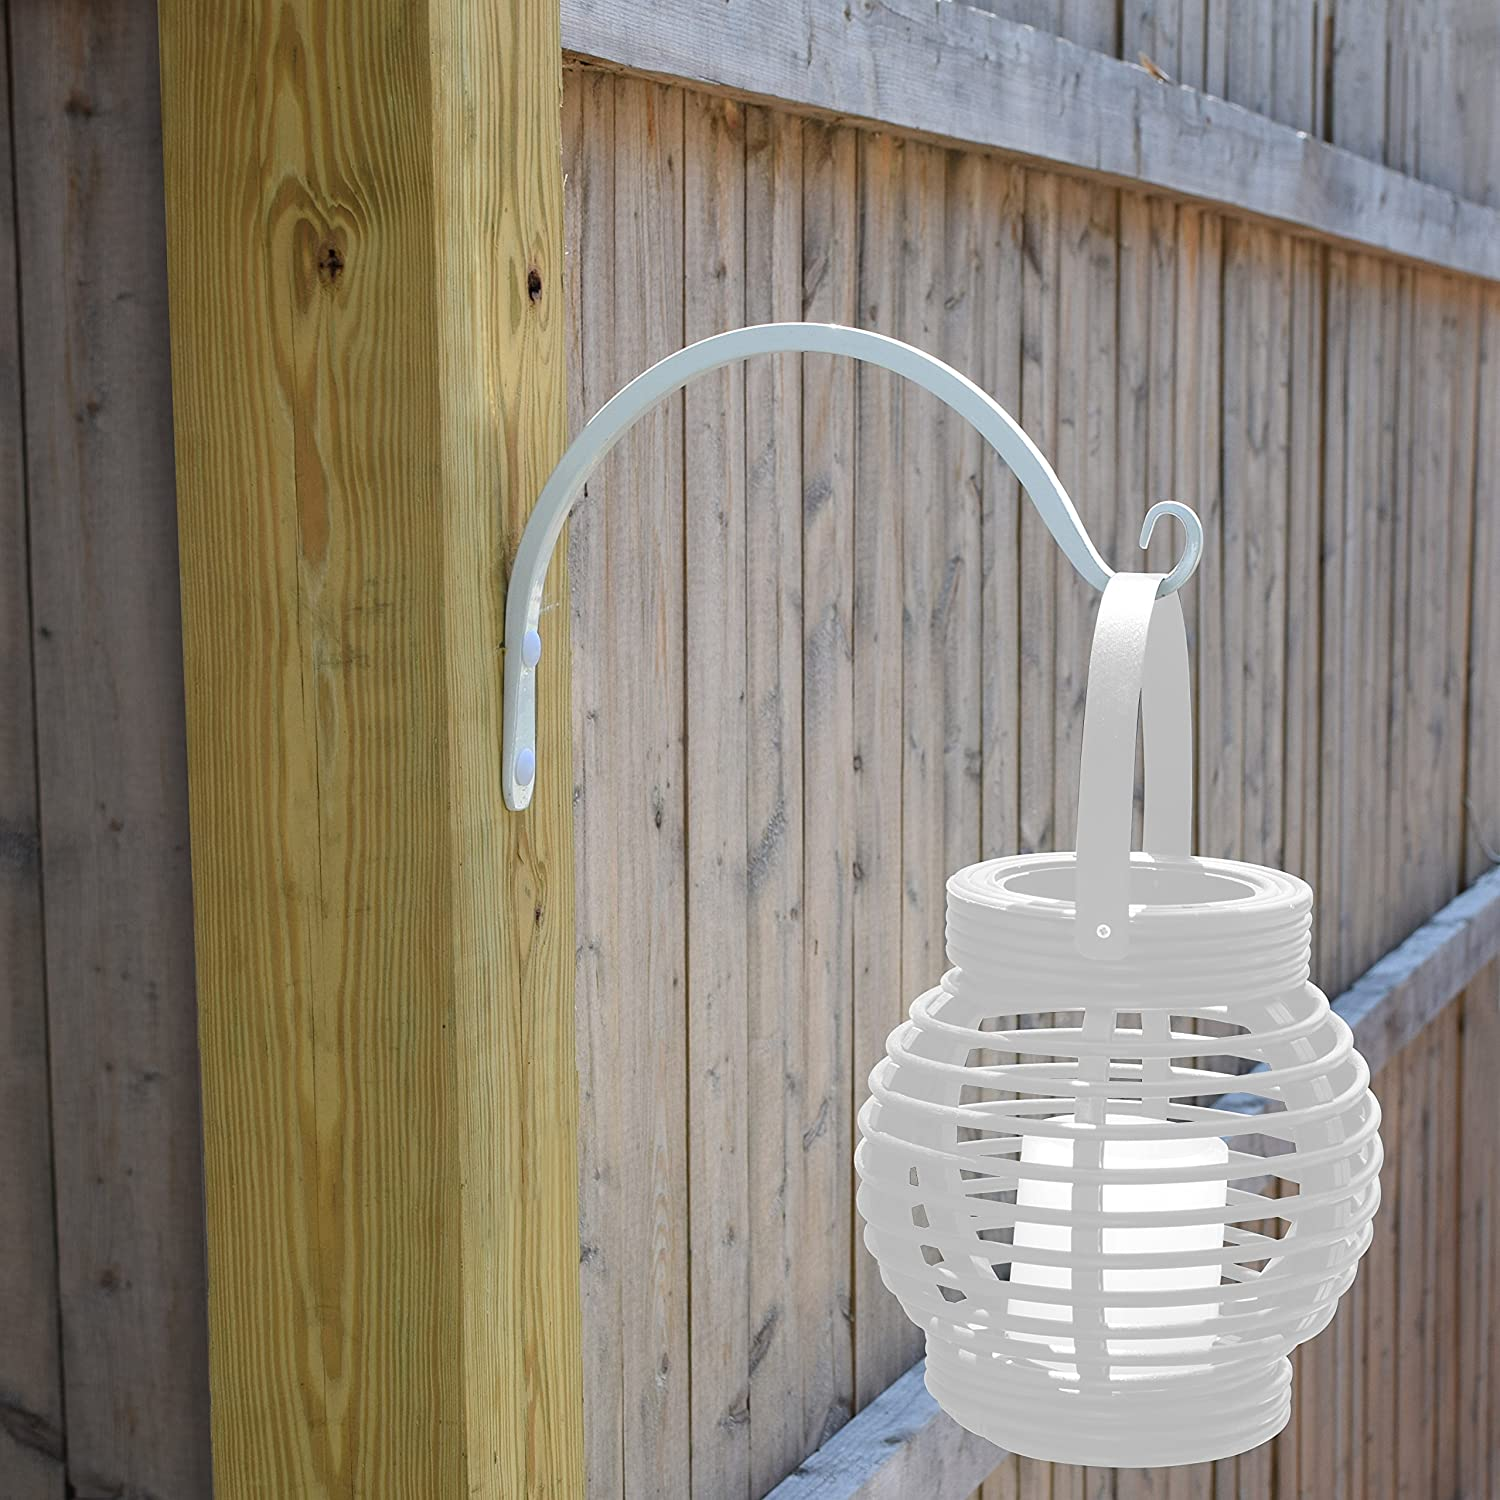 Wind Chimes Planters for Bird Feeders Lanterns 8.5 Inch As Wall Brackets and More! Gray Bunny GB-6863 Hand Forged Curved Hook White